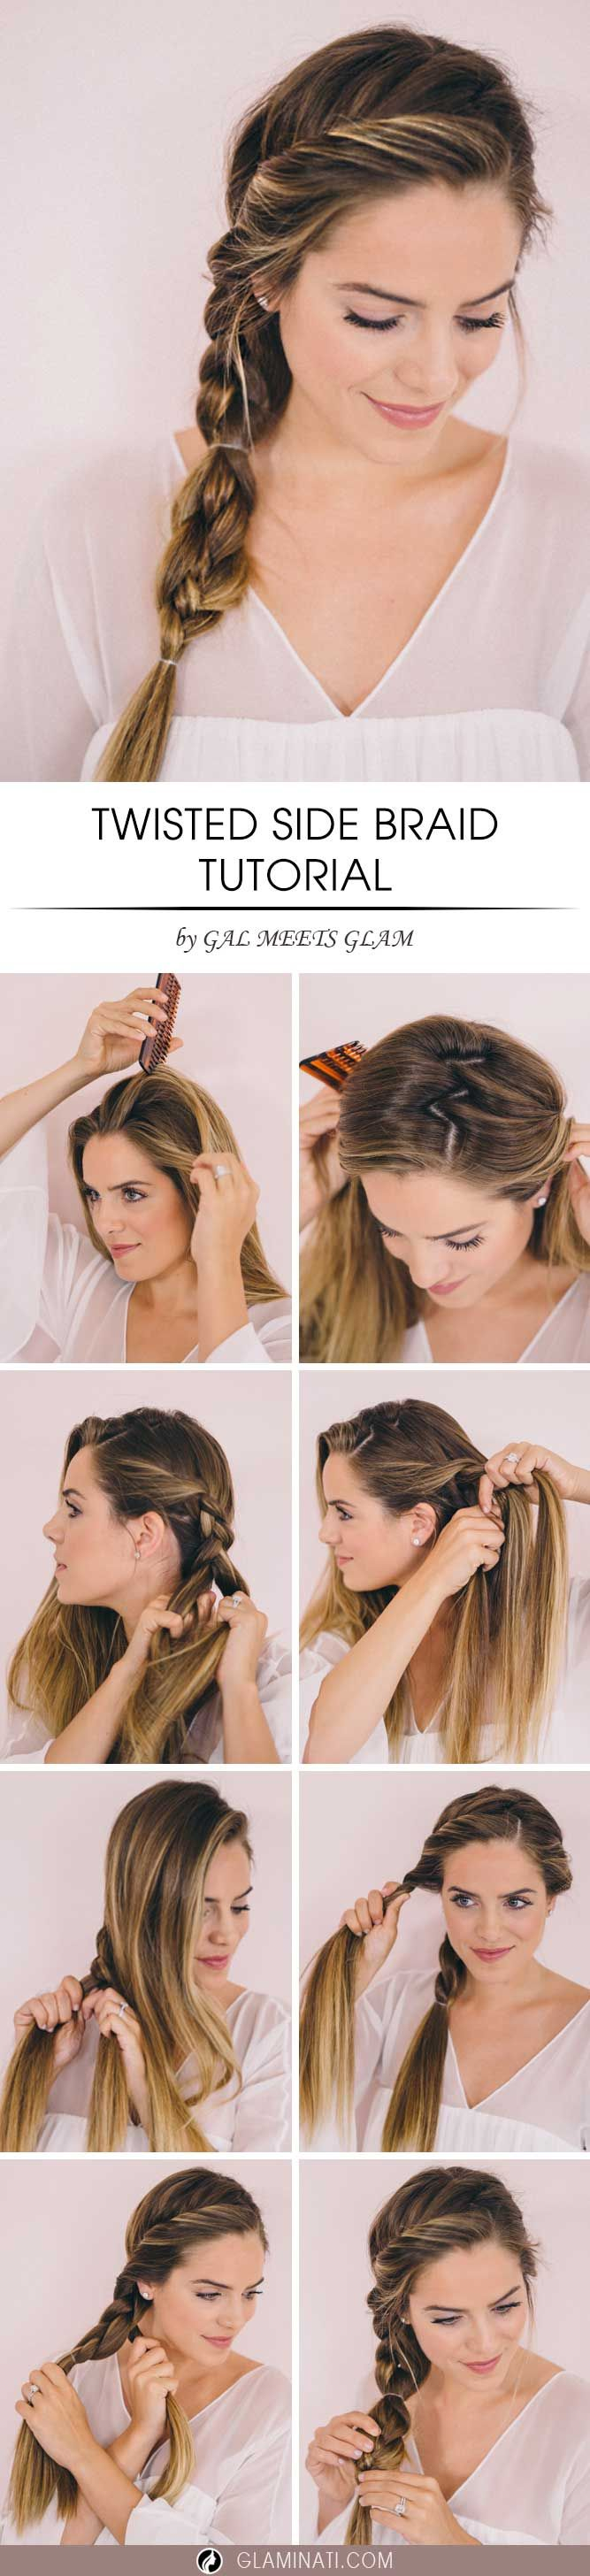 Twisted Side Braid for Various Occasions Pinterest